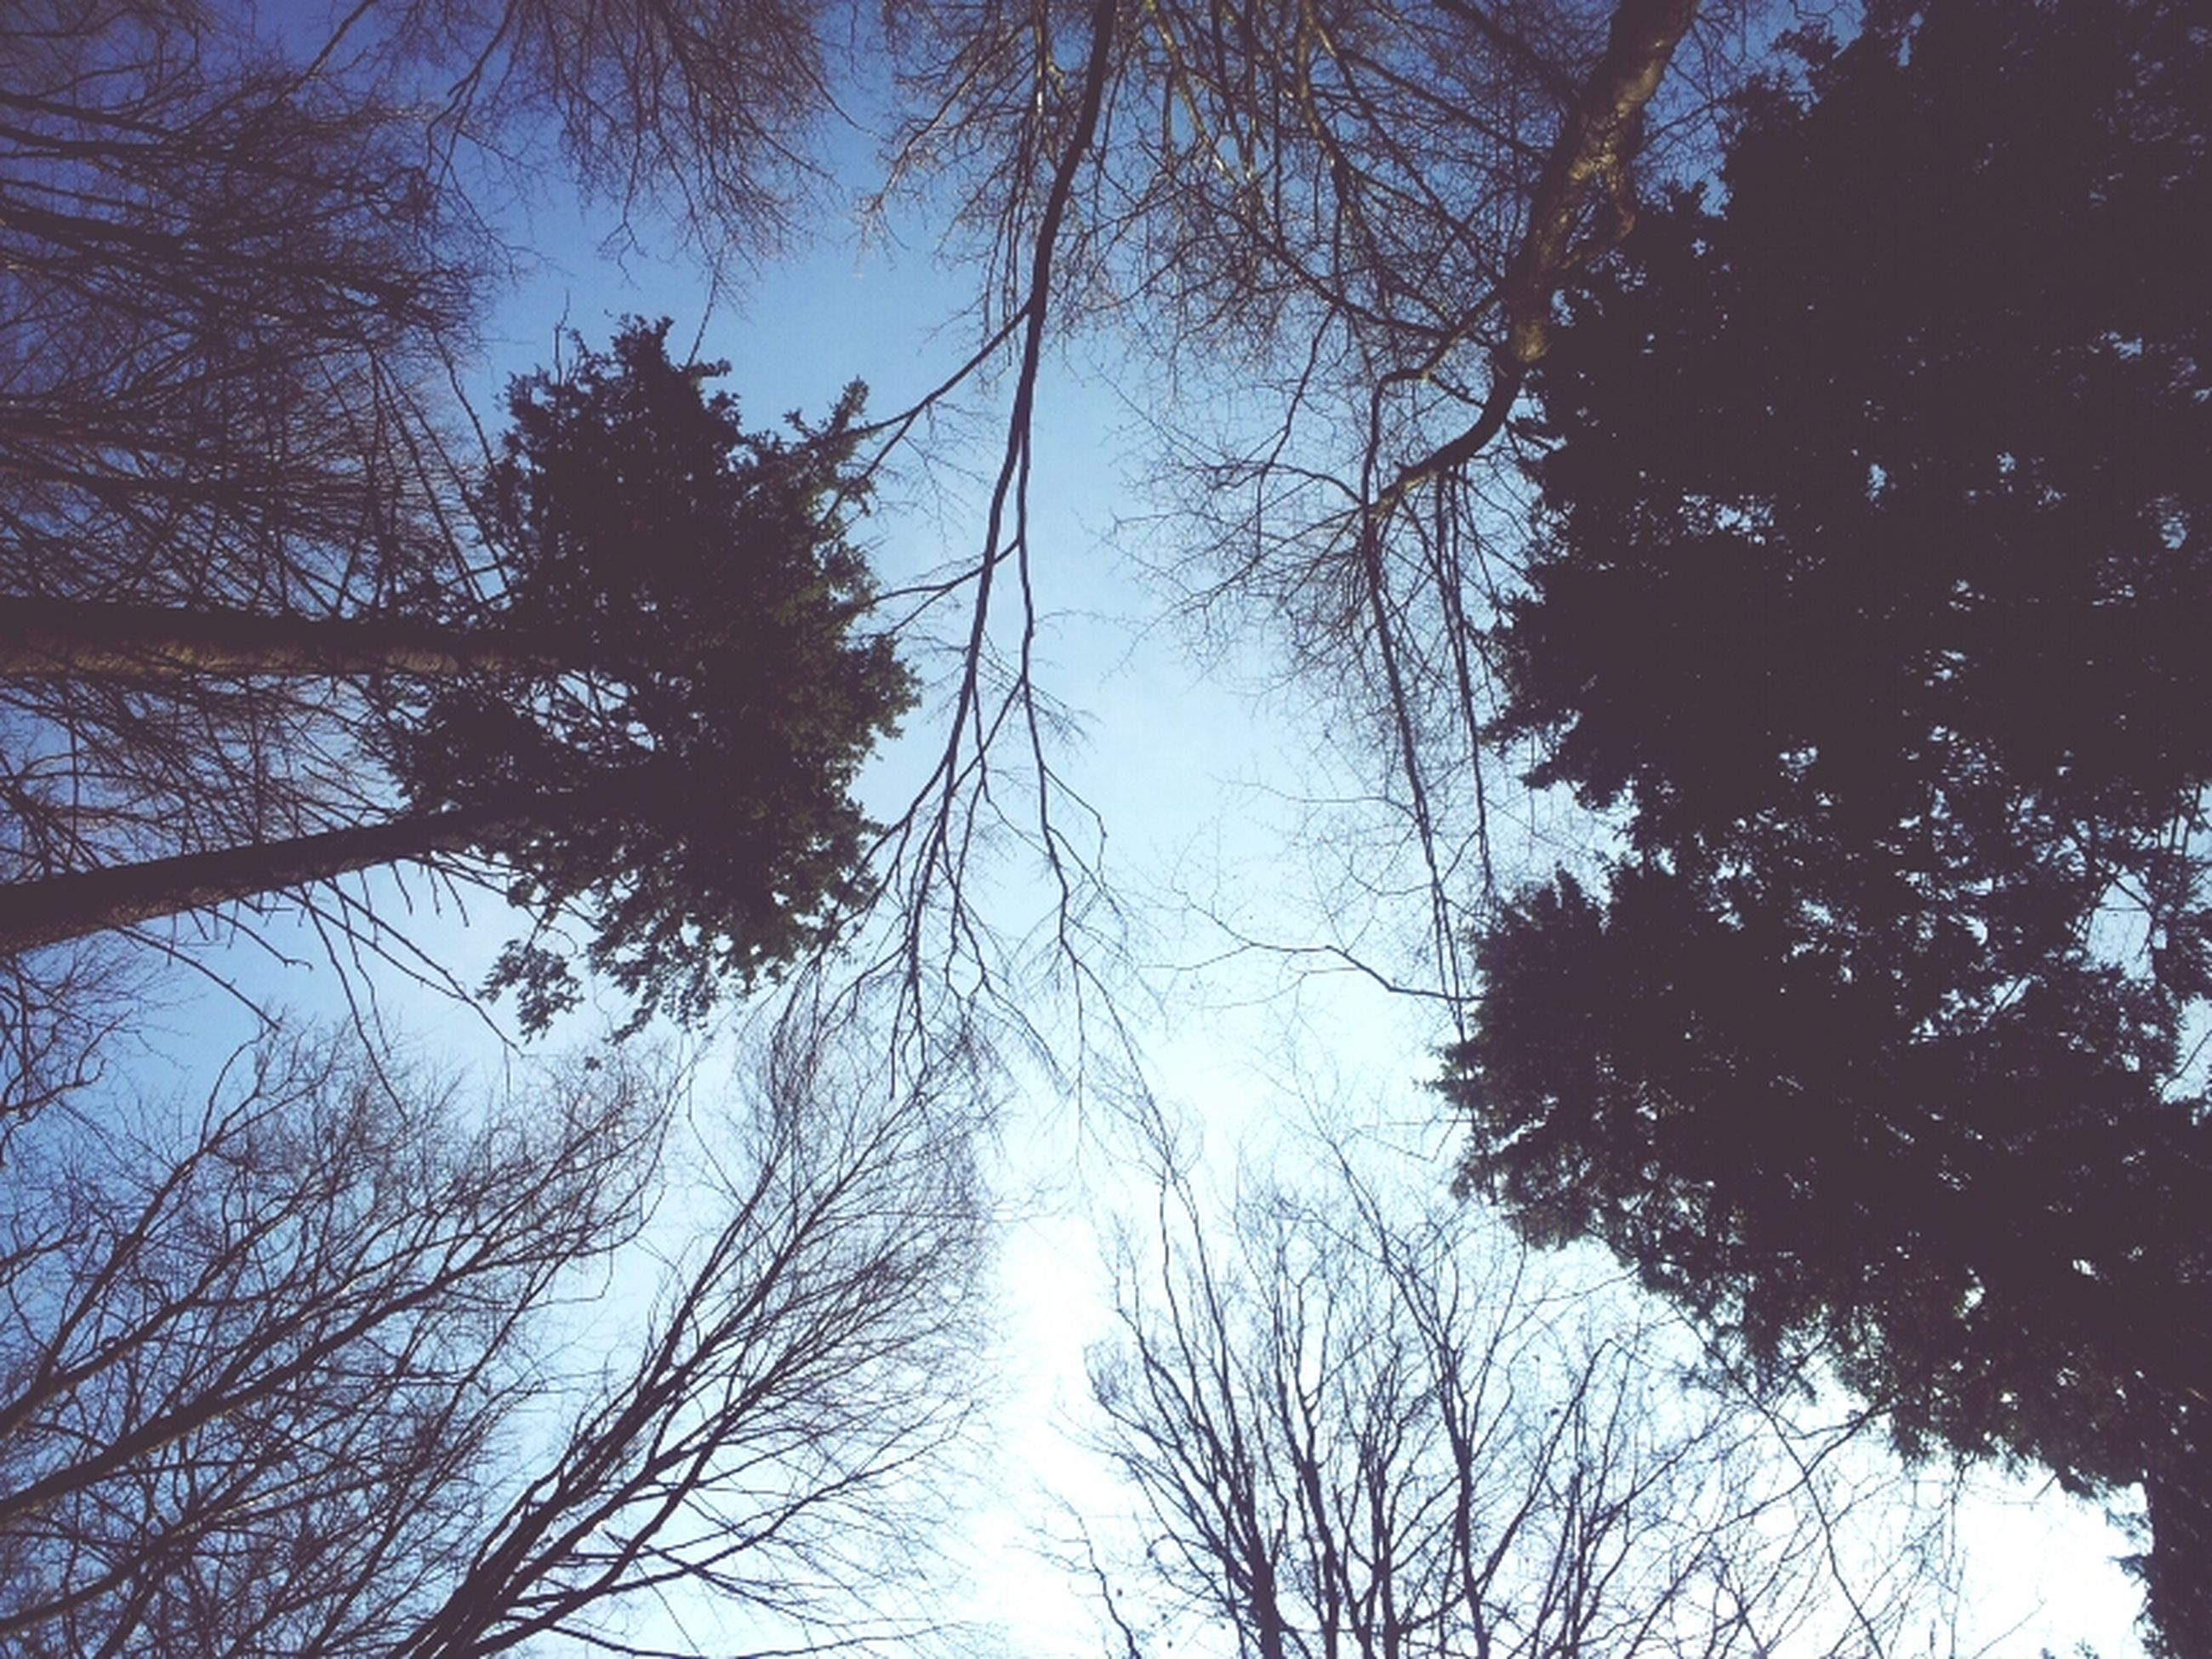 tree, low angle view, branch, tranquility, silhouette, bare tree, beauty in nature, nature, sky, growth, scenics, tranquil scene, clear sky, outdoors, tree trunk, no people, blue, day, forest, treetop